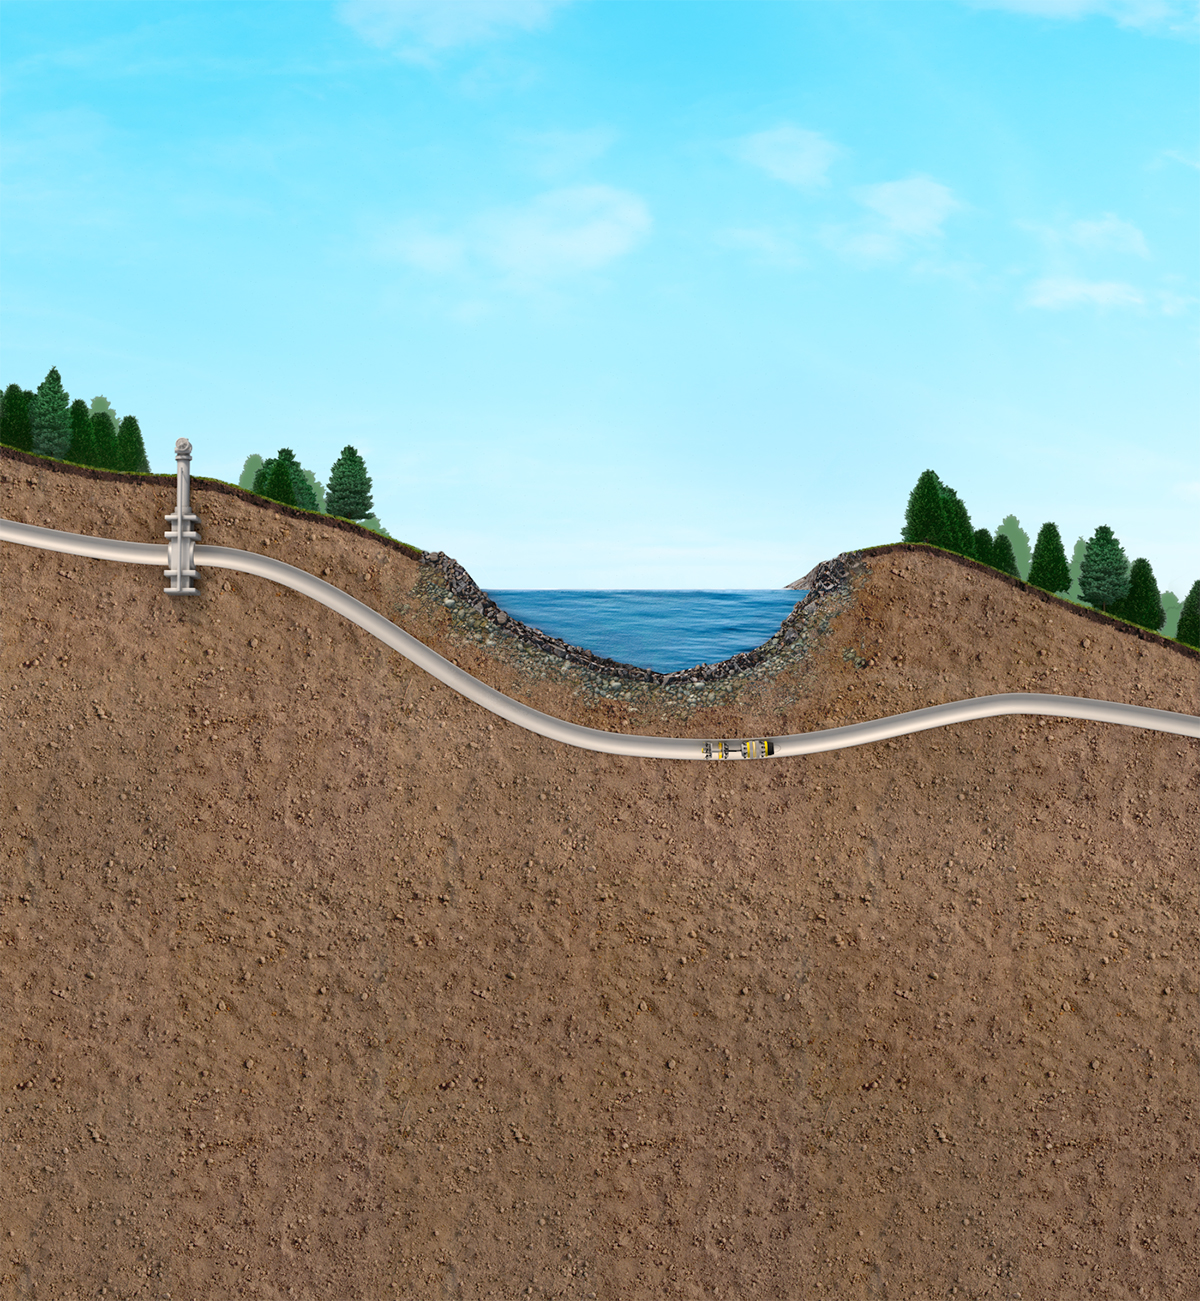 underground pipeline illustration